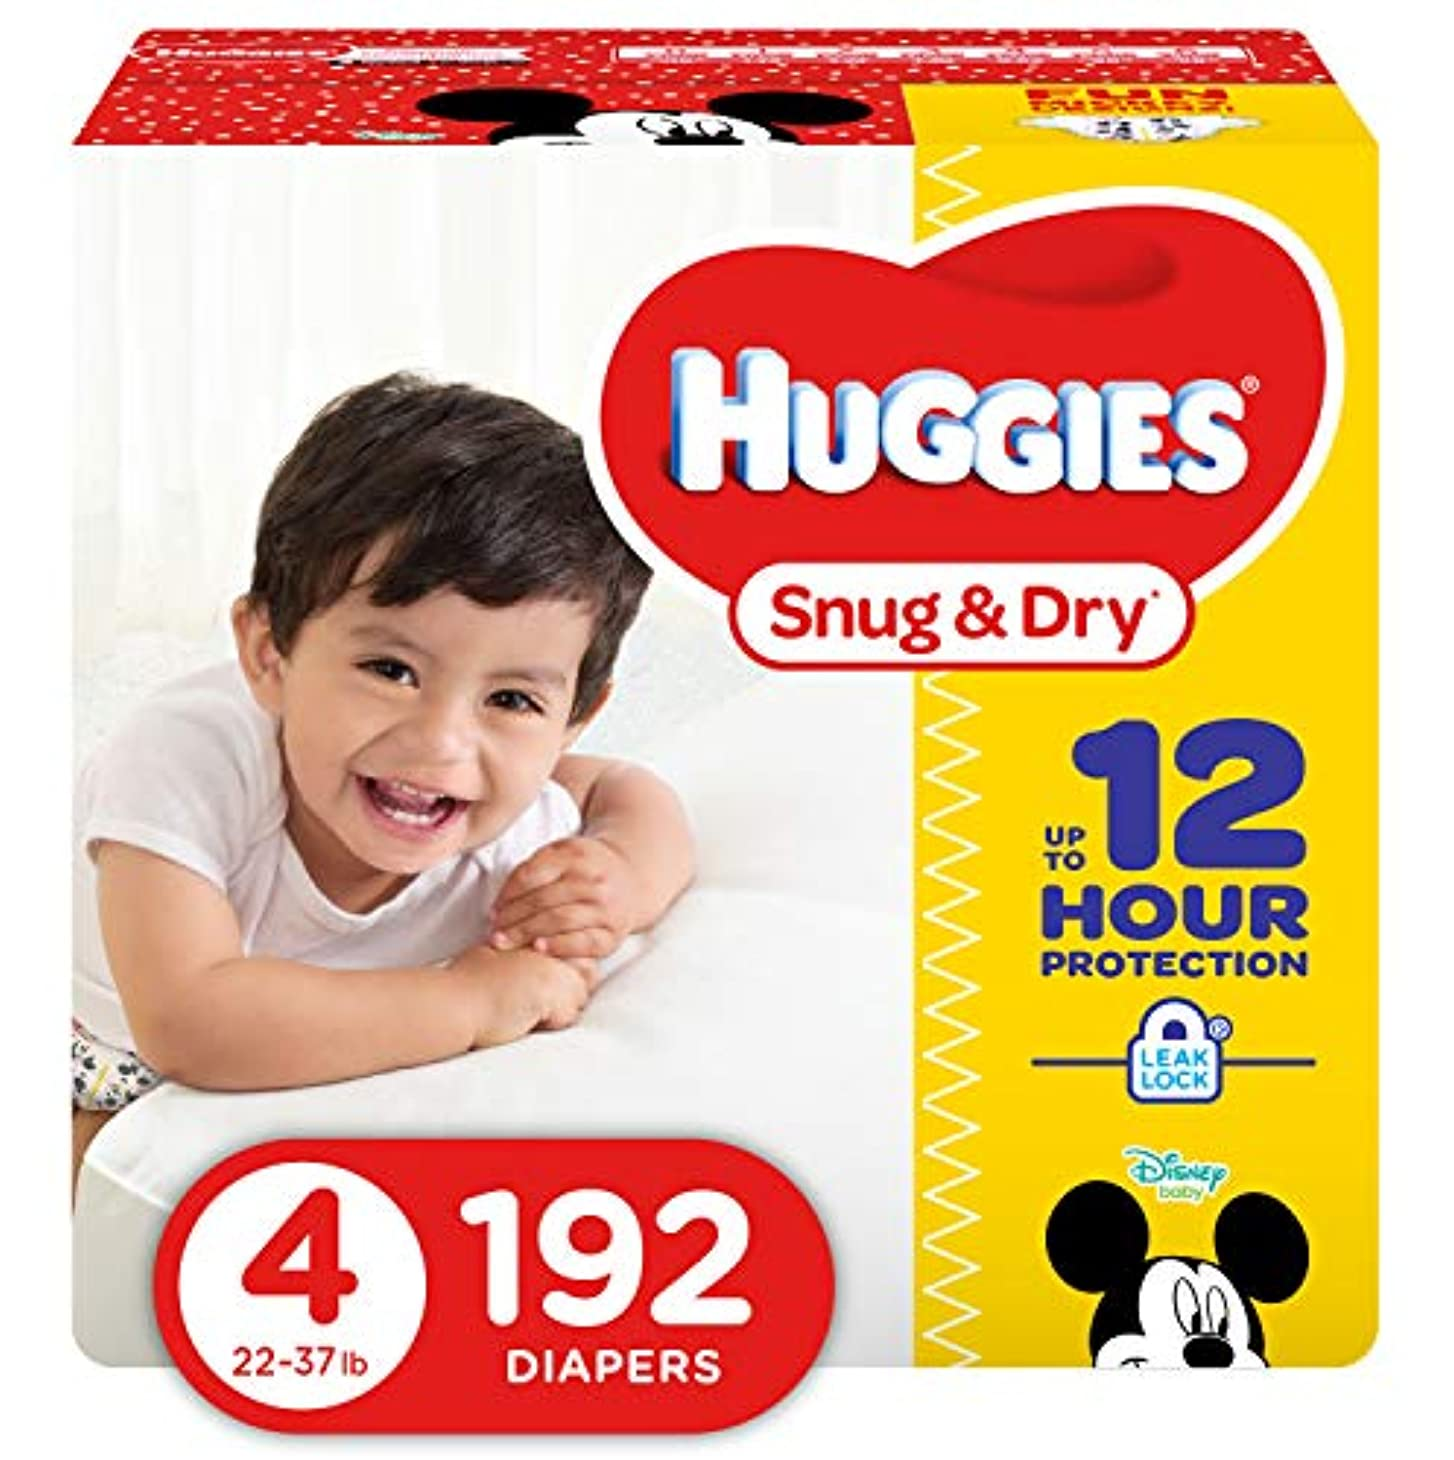 Huggies Snug & Dry Diapers, Size 4, 192 Count (One Month Supply) by Huggies